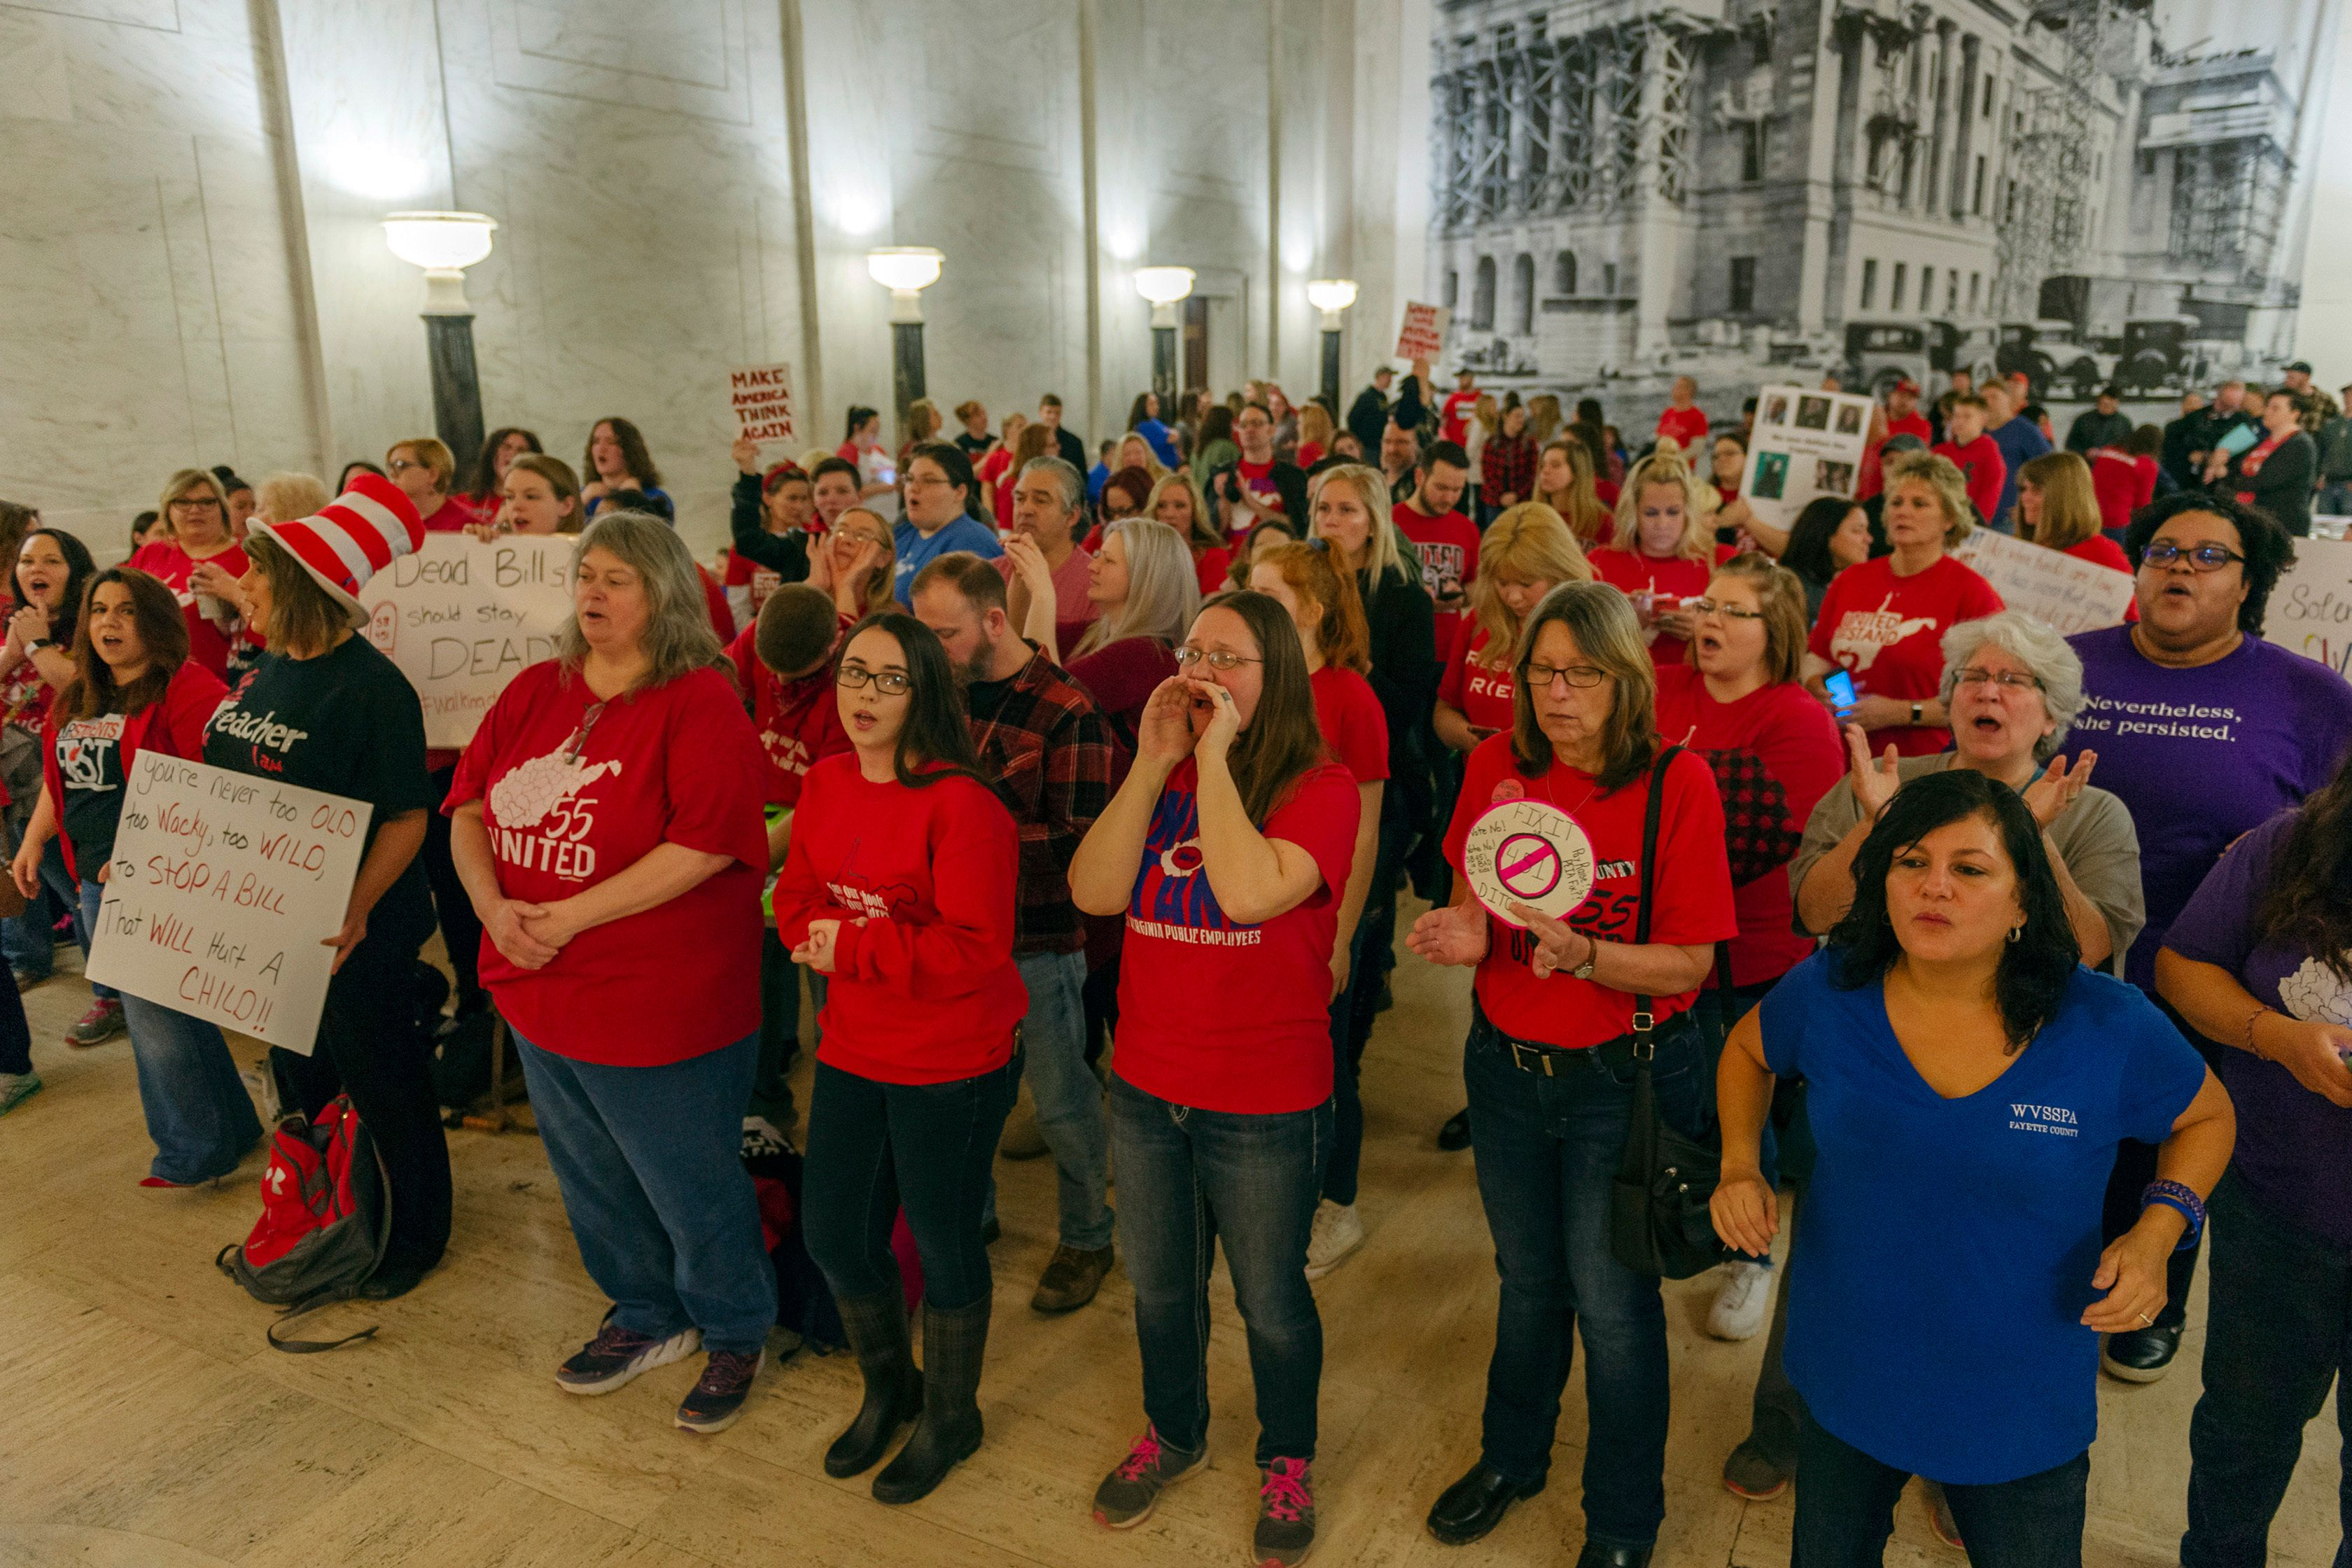 CORRECTS DAY OF WEEK TO WEDNESDAY - Teachers and school personnel, on the second day of a statewide strike, demonstrate outside the House of Delegates chamber, Wednesday, Feb. 20, 2019, at the West Virginia State Capitol in Charleston, W.Va. West Virginia public school teachers are striking for a second day even though legislation they loathed was tabled in the House of Delegates. Schools in 54 of the state's 55 counties were closed Wednesday. The lone holdout again was Putnam County. (Craig Hudson/Charleston Gazette-Mail via AP)